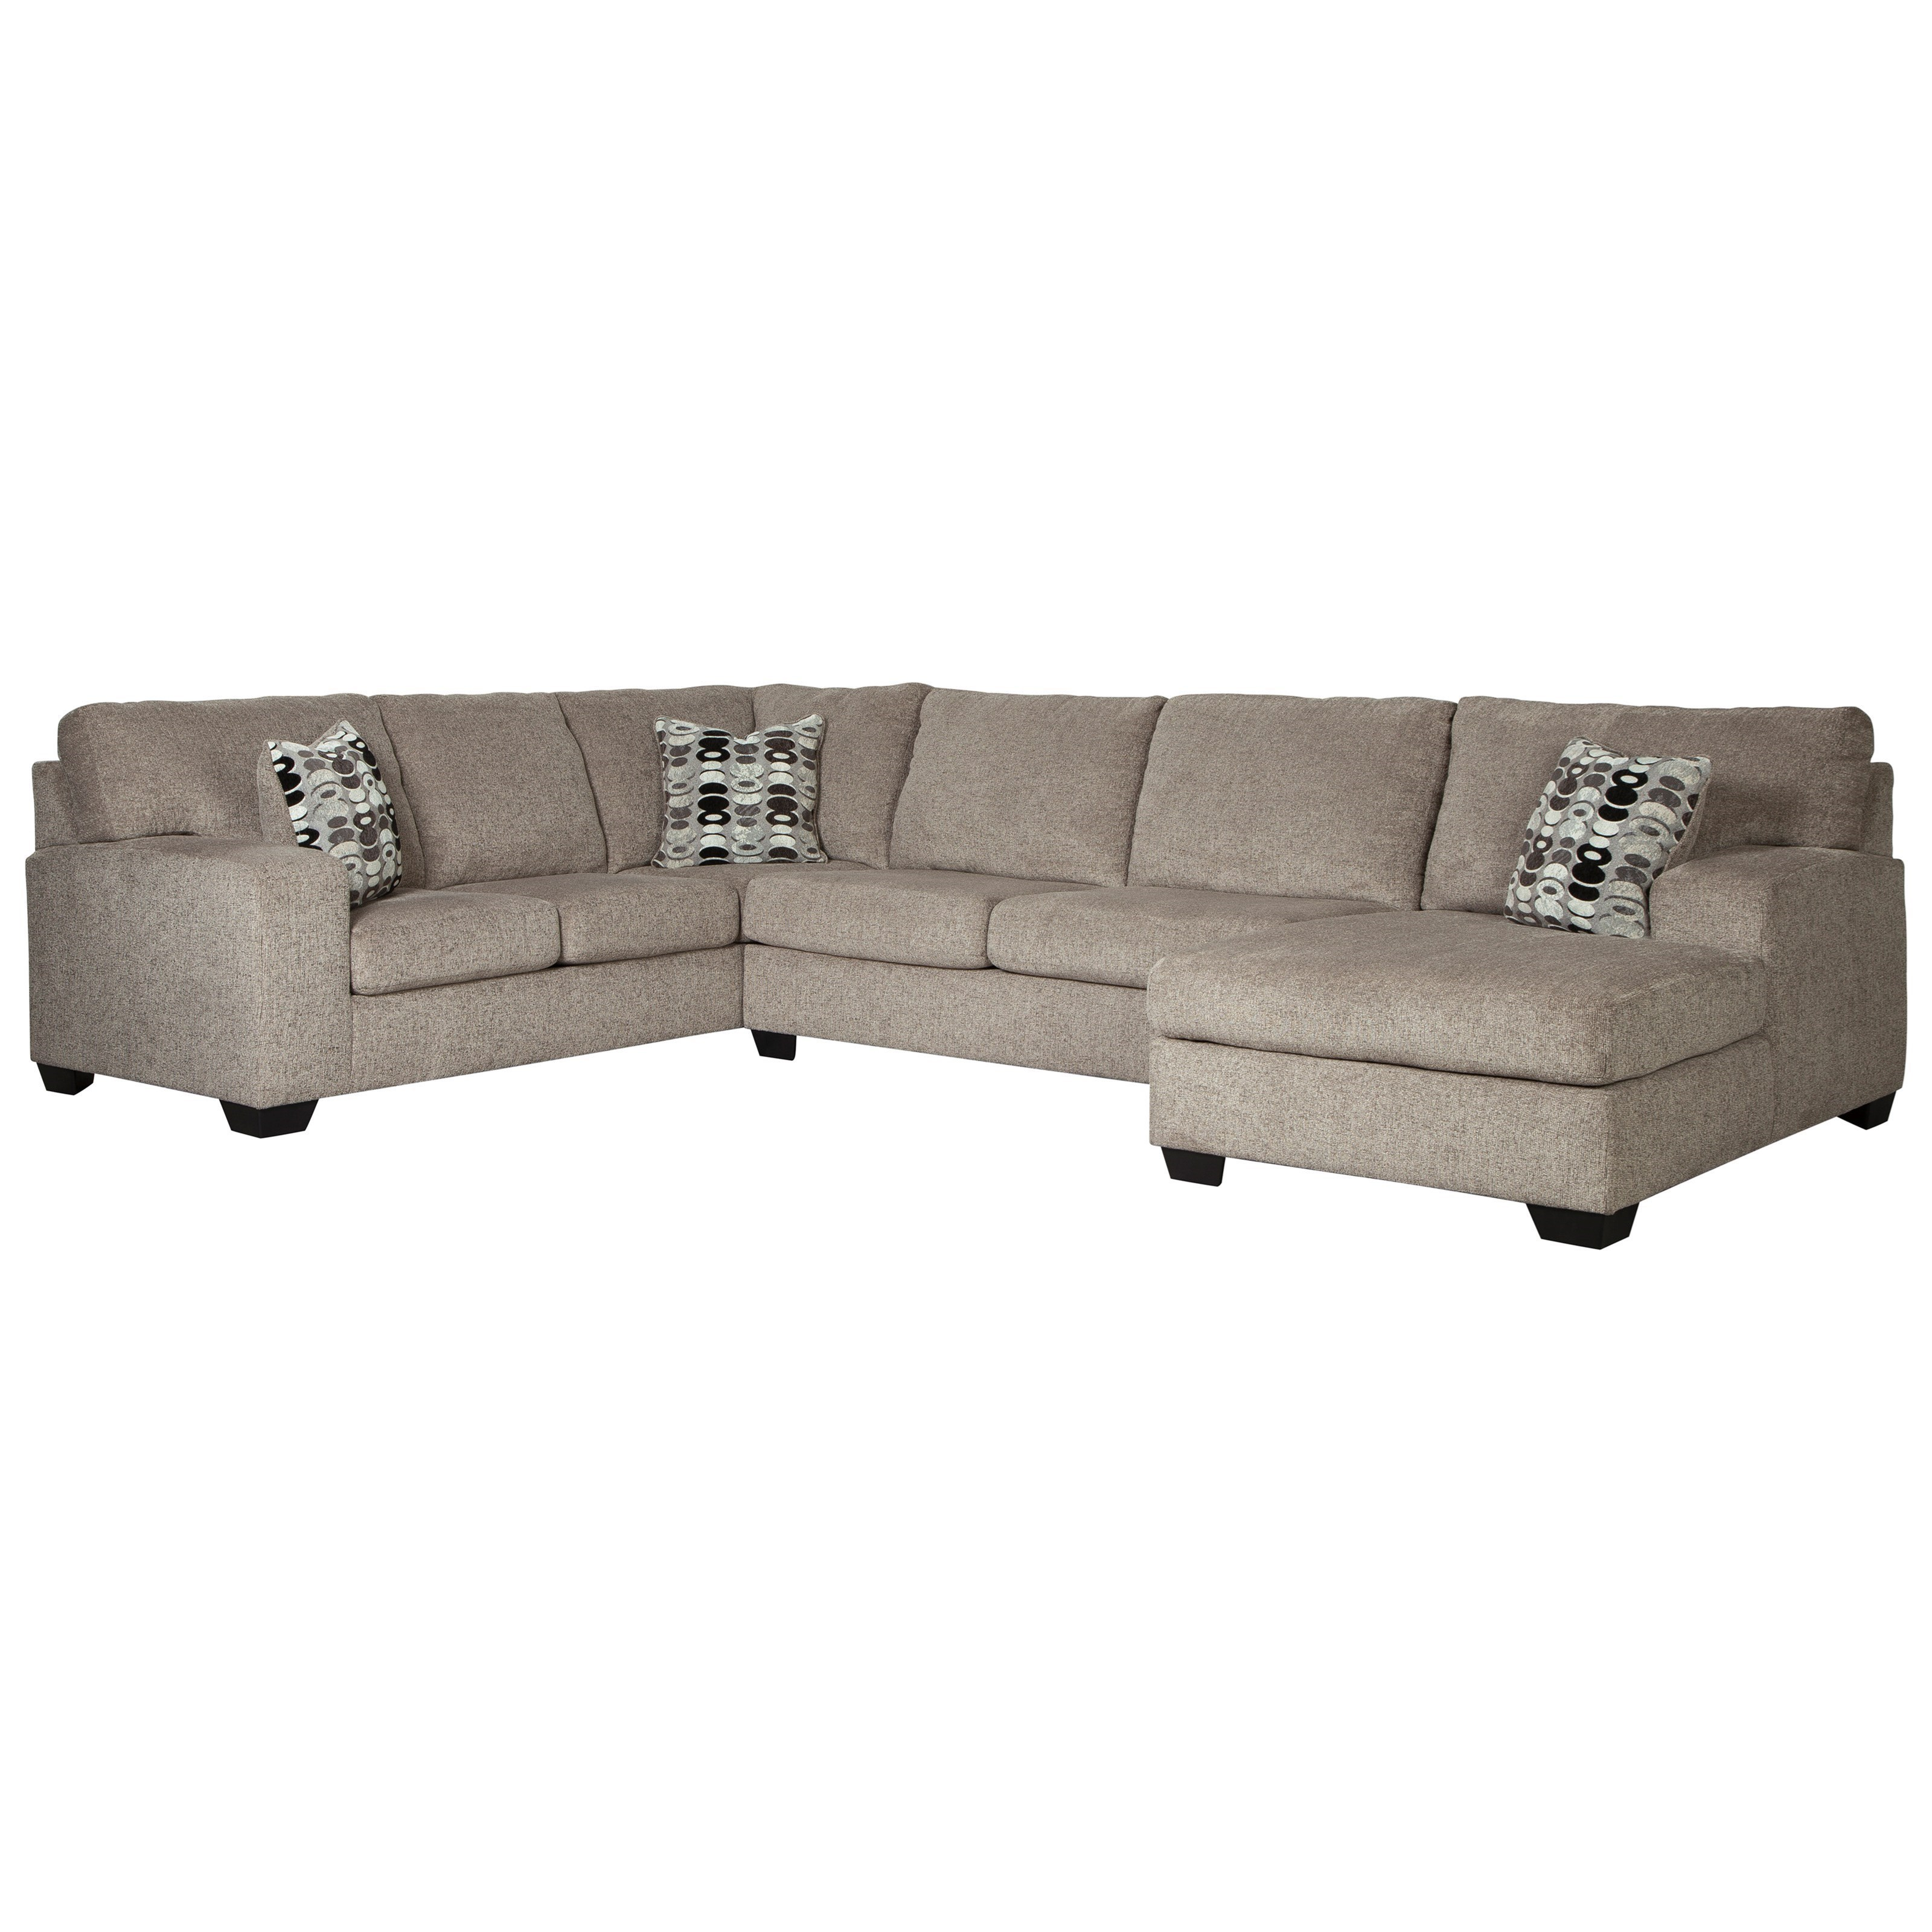 Signature Design By Ashley Ballinasloe Contemporary 3 Piece Sectional With Chaise Furniture